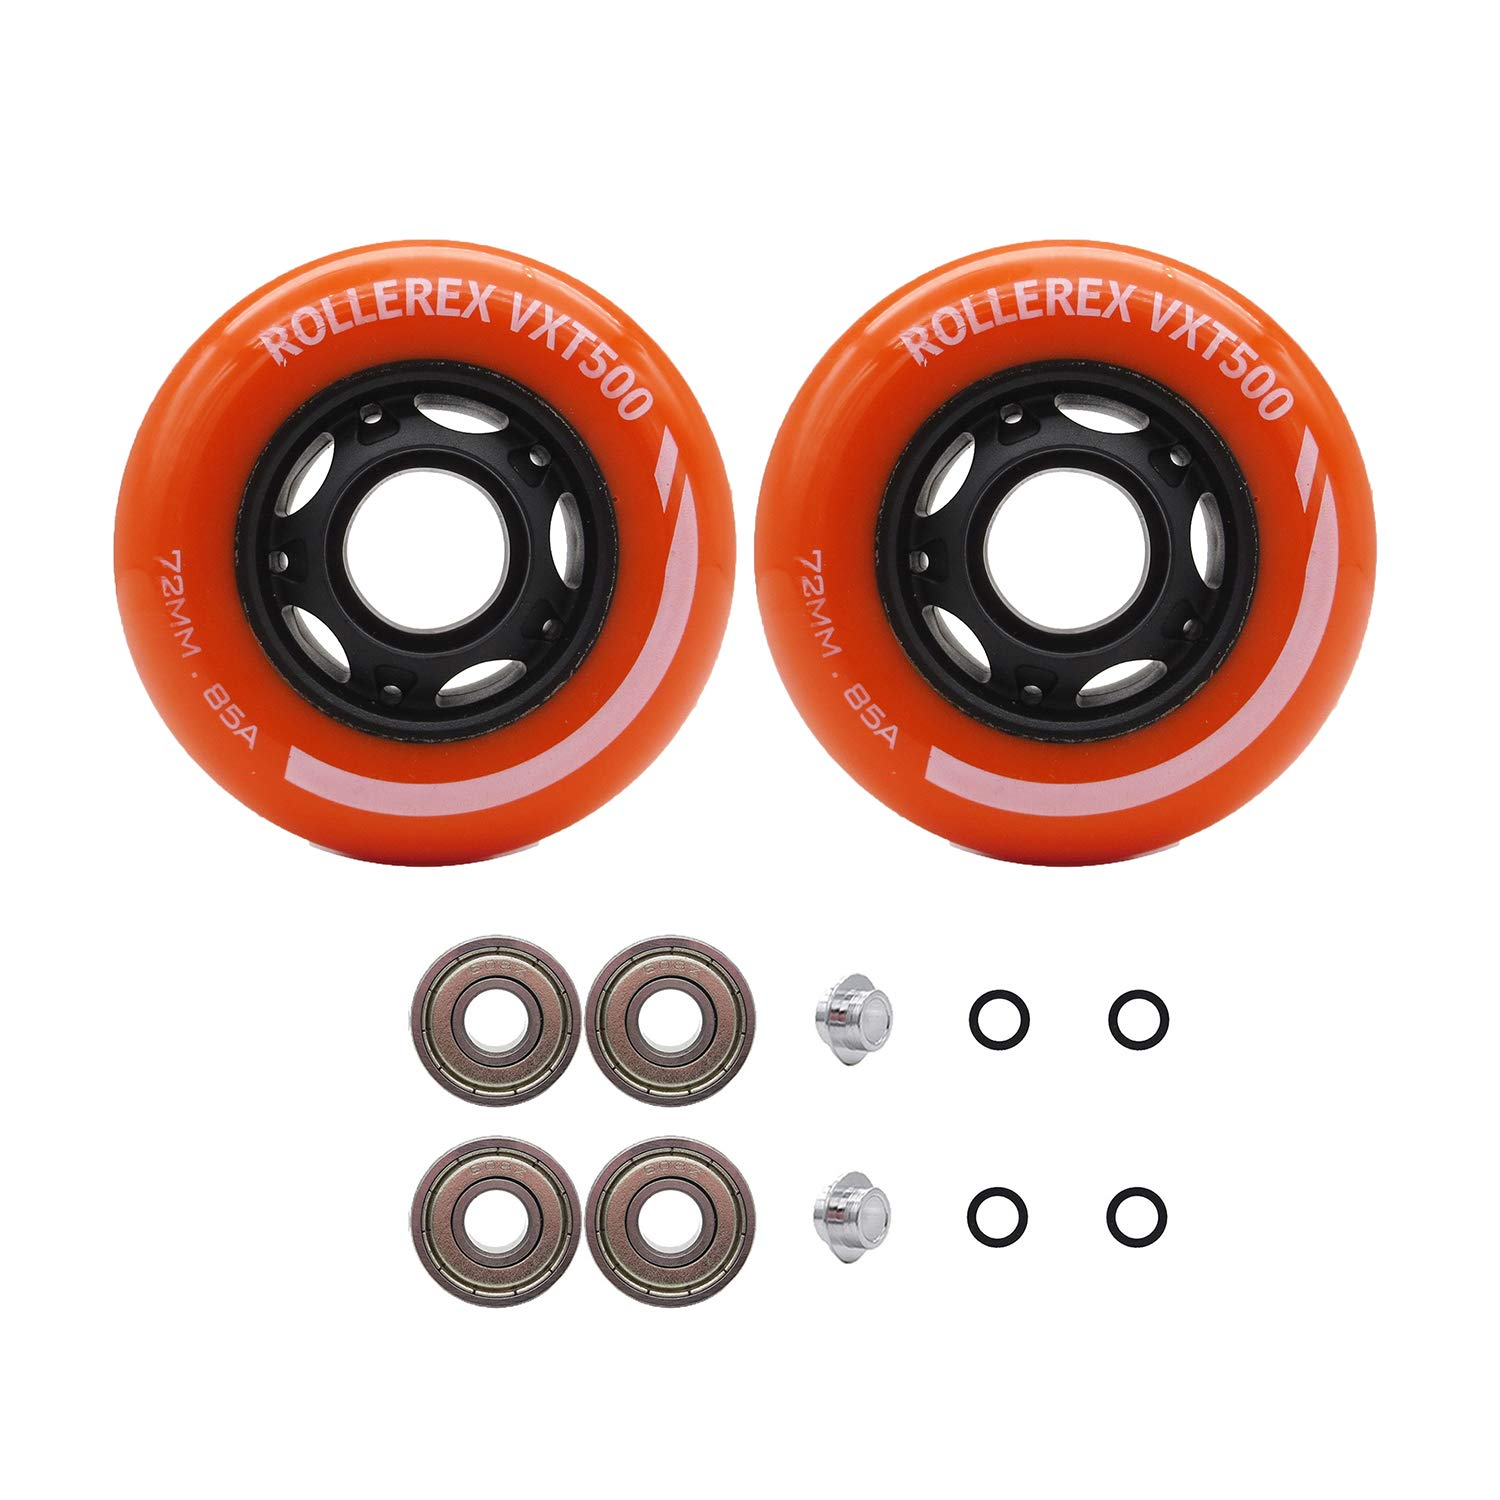 Rollerex VXT500 Inline Skate Wheels (2-Pack w/Bearings, spacers and washers) (Sunrise Orange, 72mm) by Rollerex